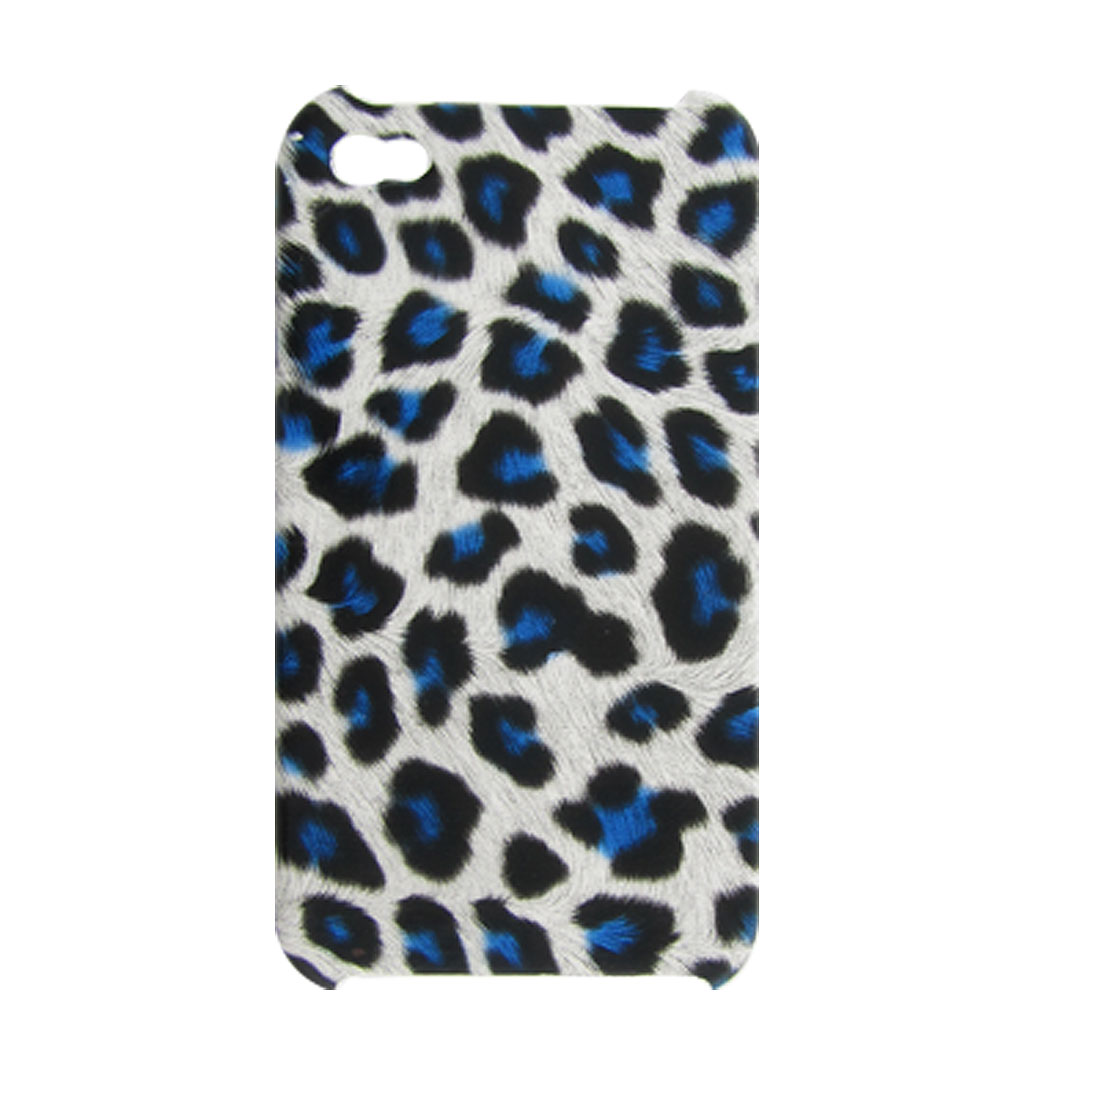 Blue Leopard Print Faux Leather Coated Hard Back Case for iPhone 4 4G